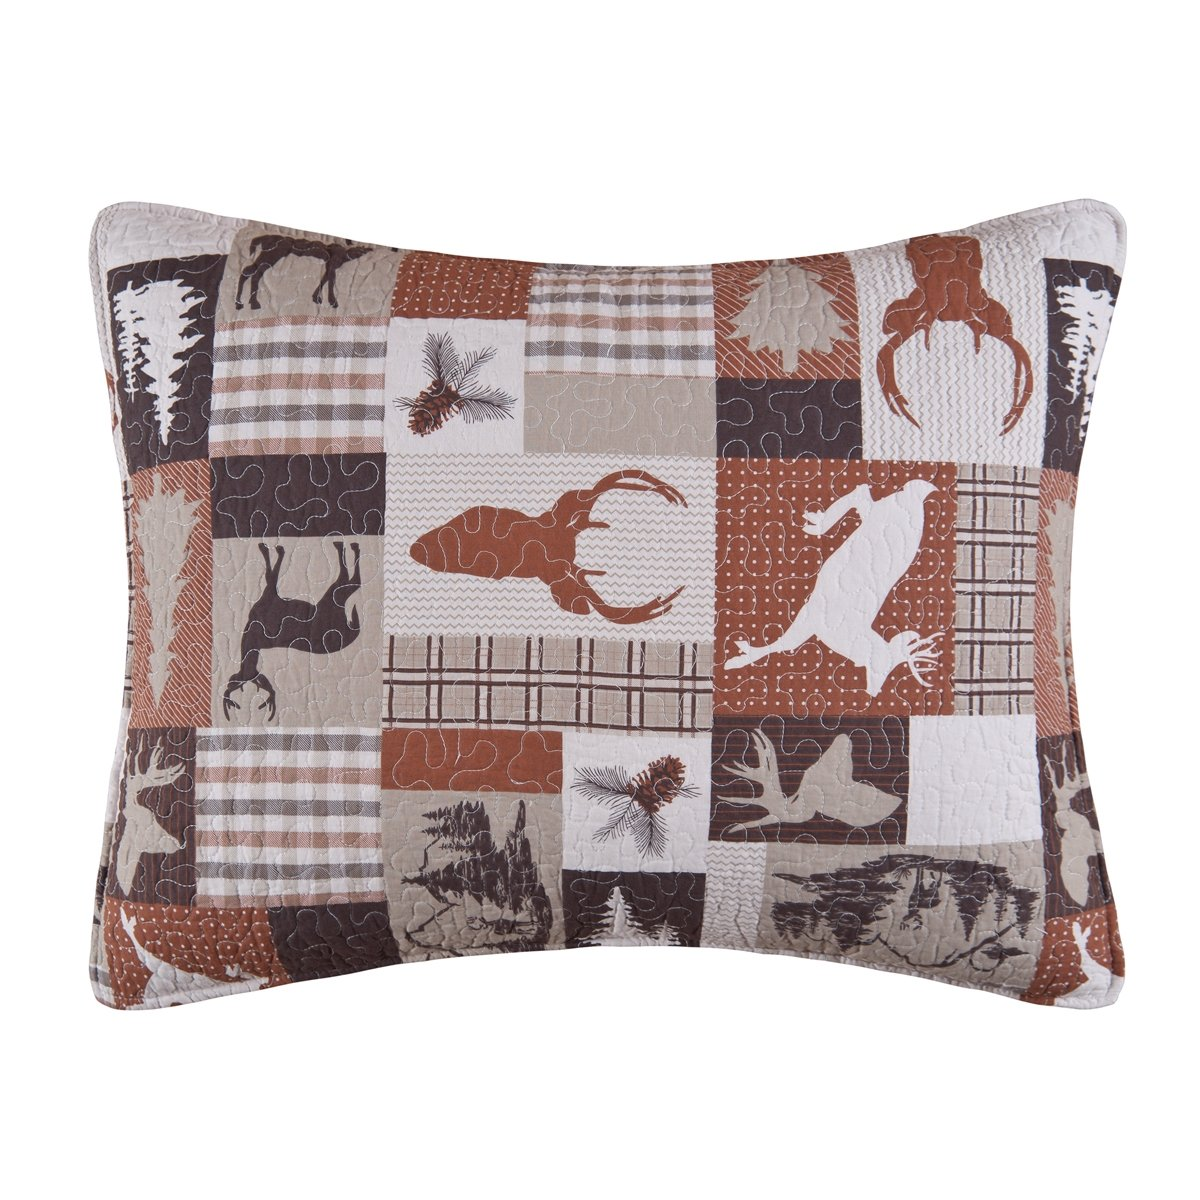 C & F Enterprises Shades of Brown Tan Beige Animals Deer Antlers Pines Forest Wilderness Pattern Quilted Sham, Hunter -- Standard , 20 Inches by 26 Inches